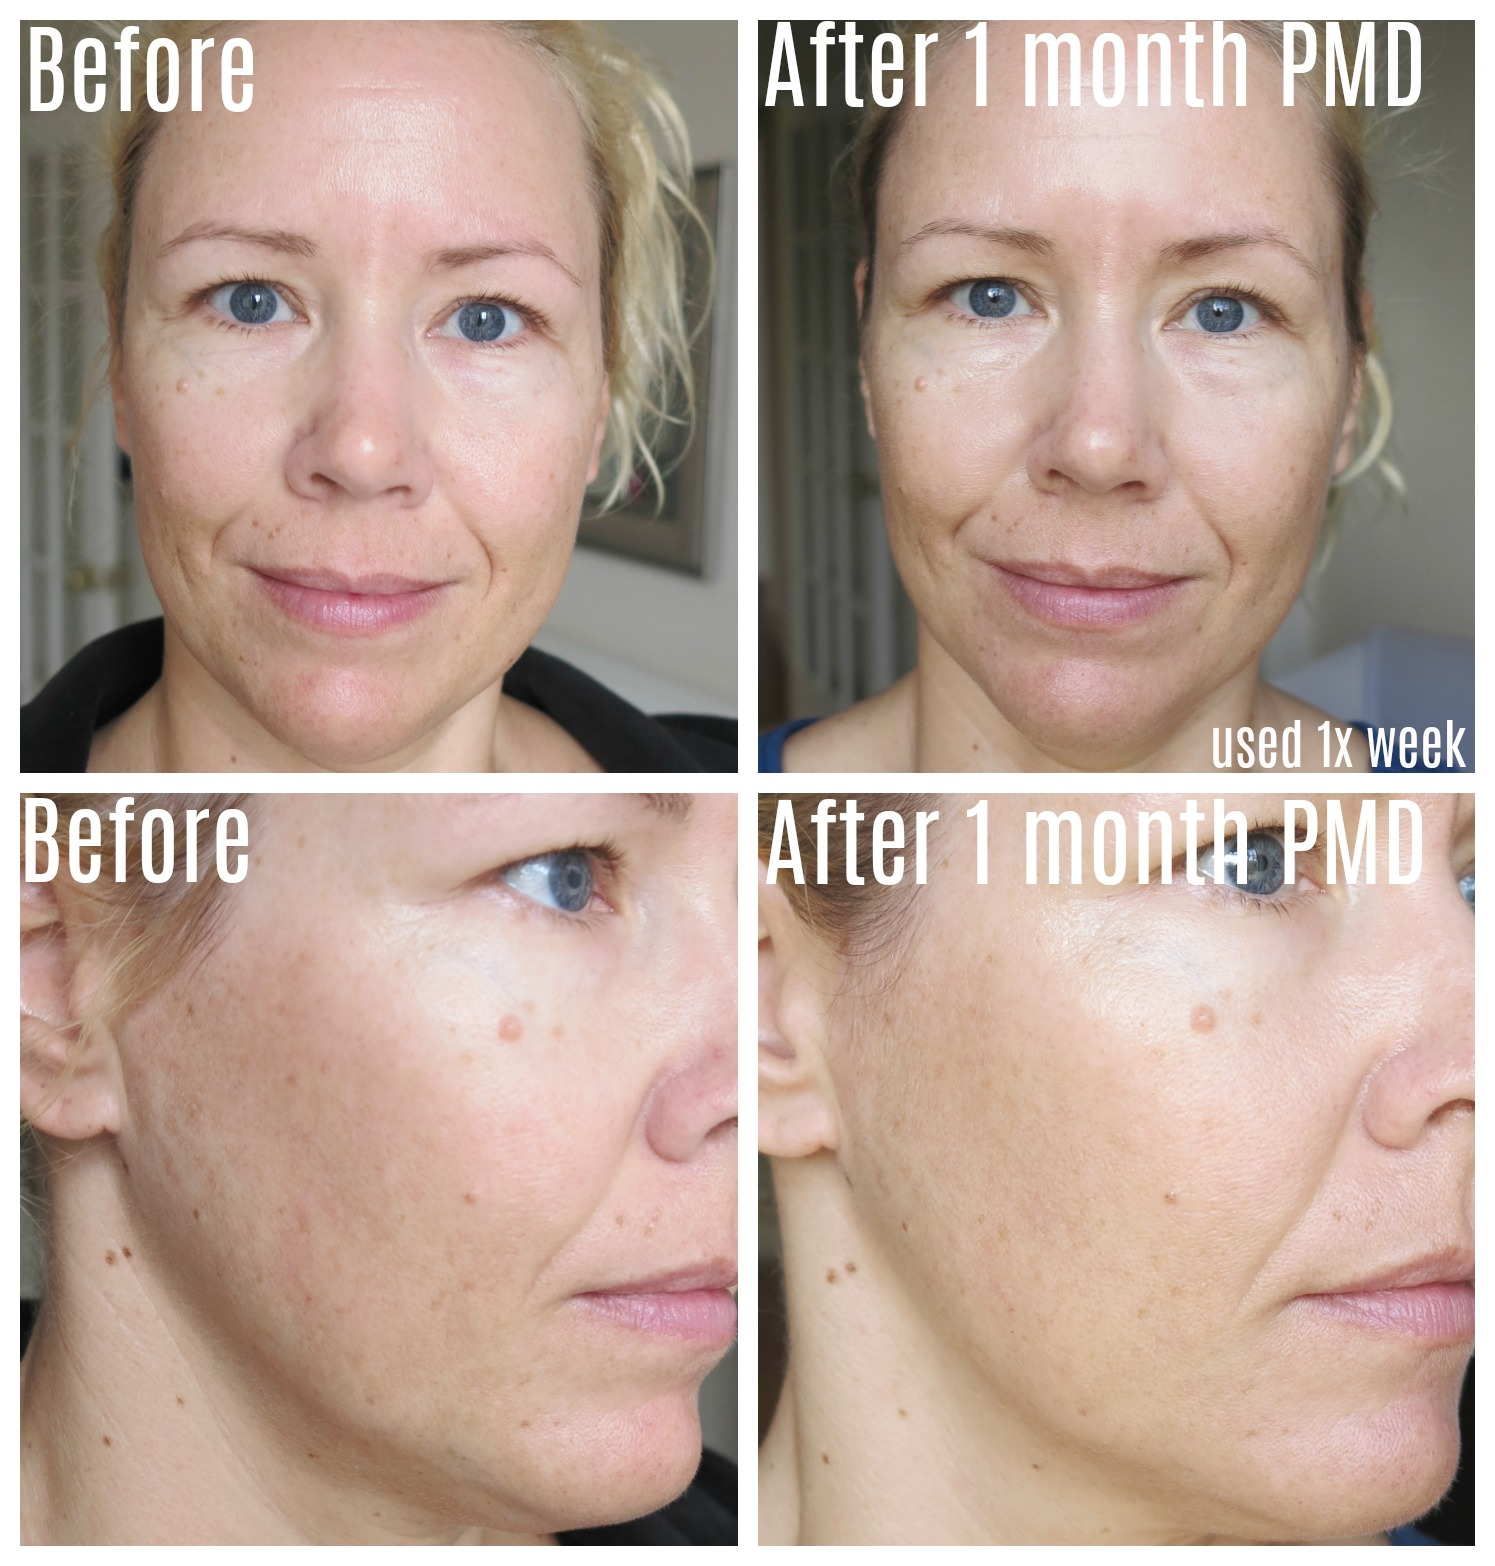 PMD PERSONAL MICRODERM 1 MONTH UPDATE WITH BEFORE AFTER PICTURES!